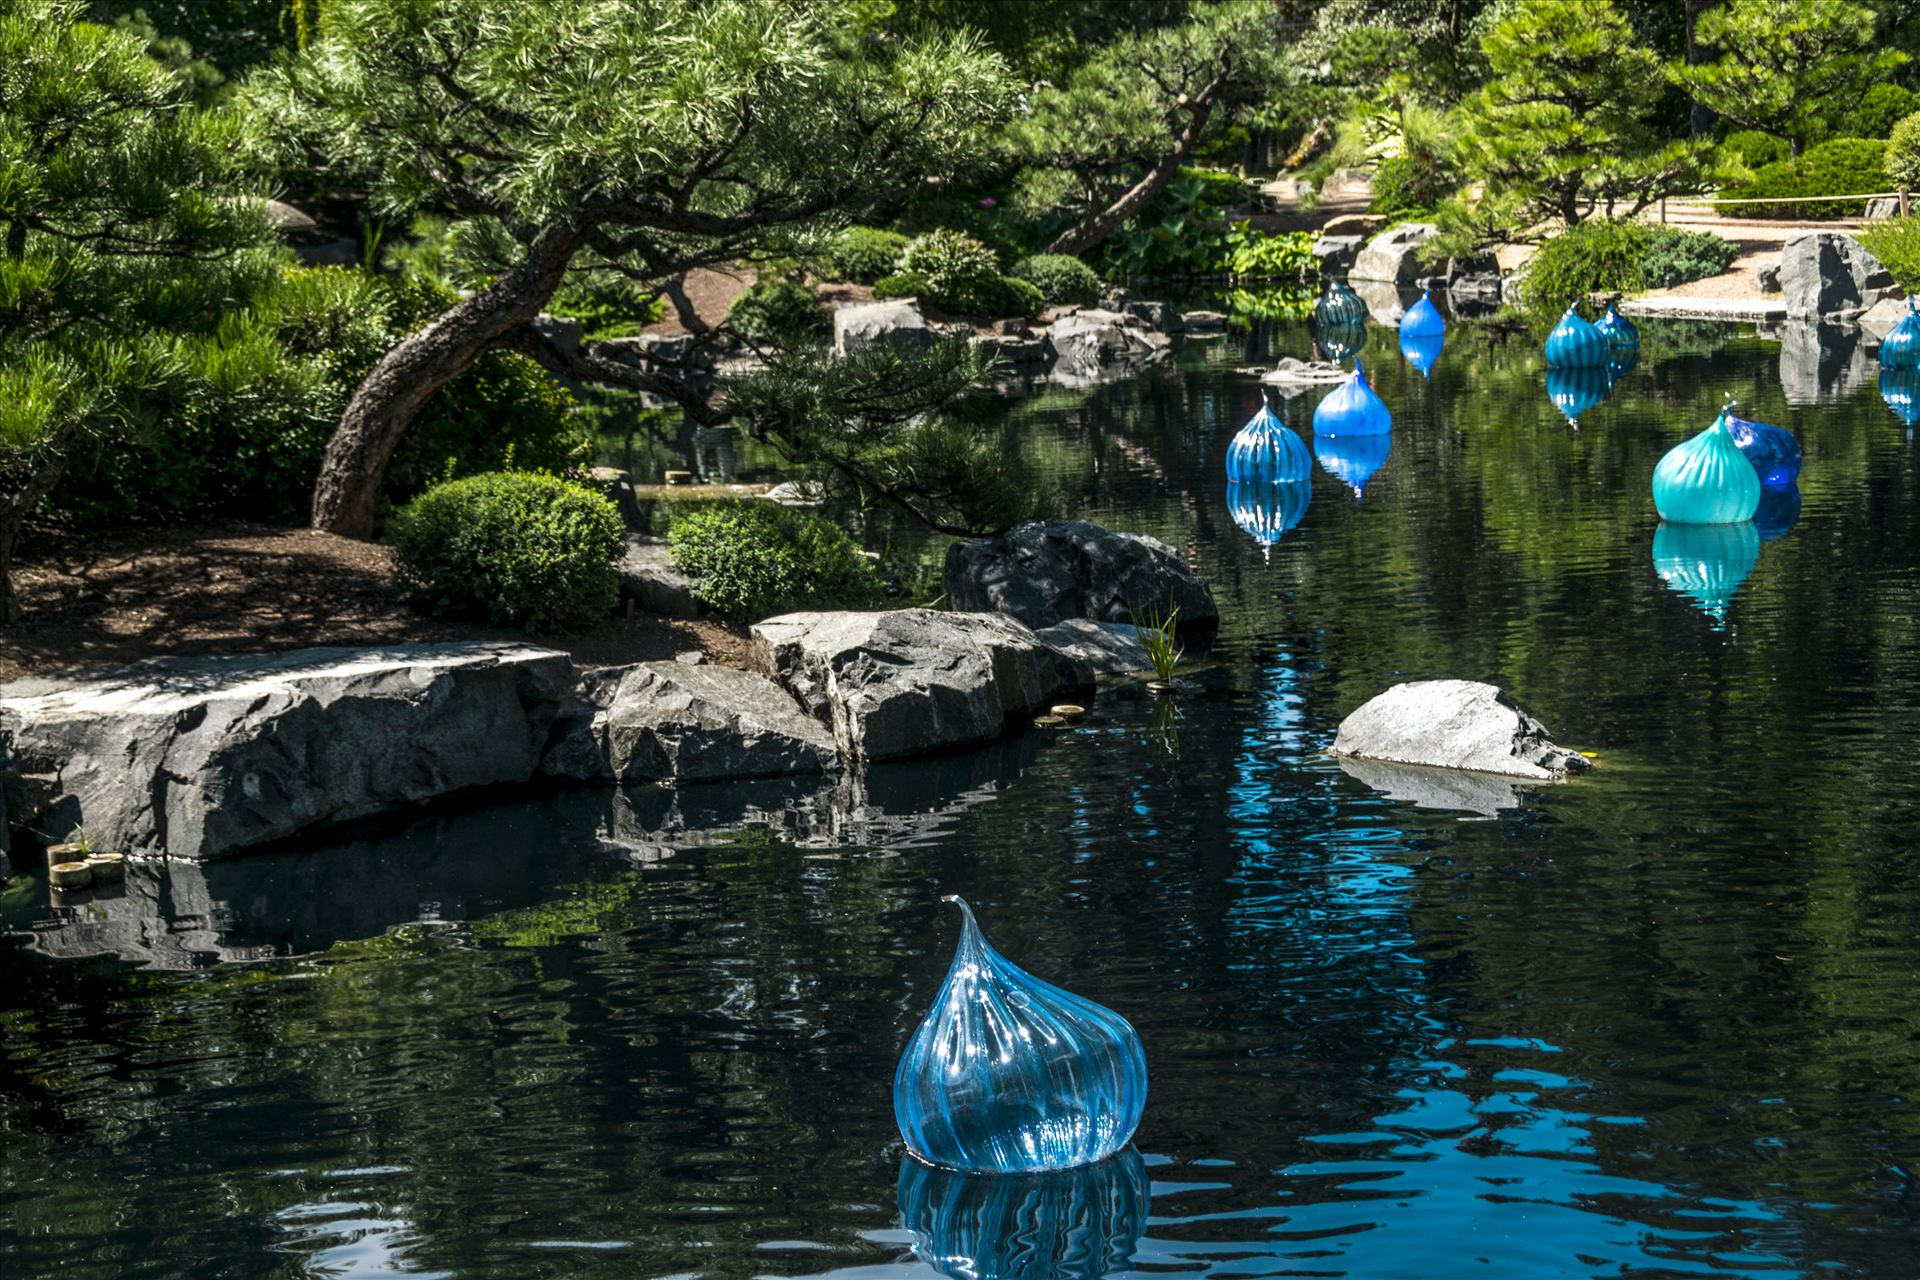 Chihuly Floating Balls.jpg -  by Dennis Rose